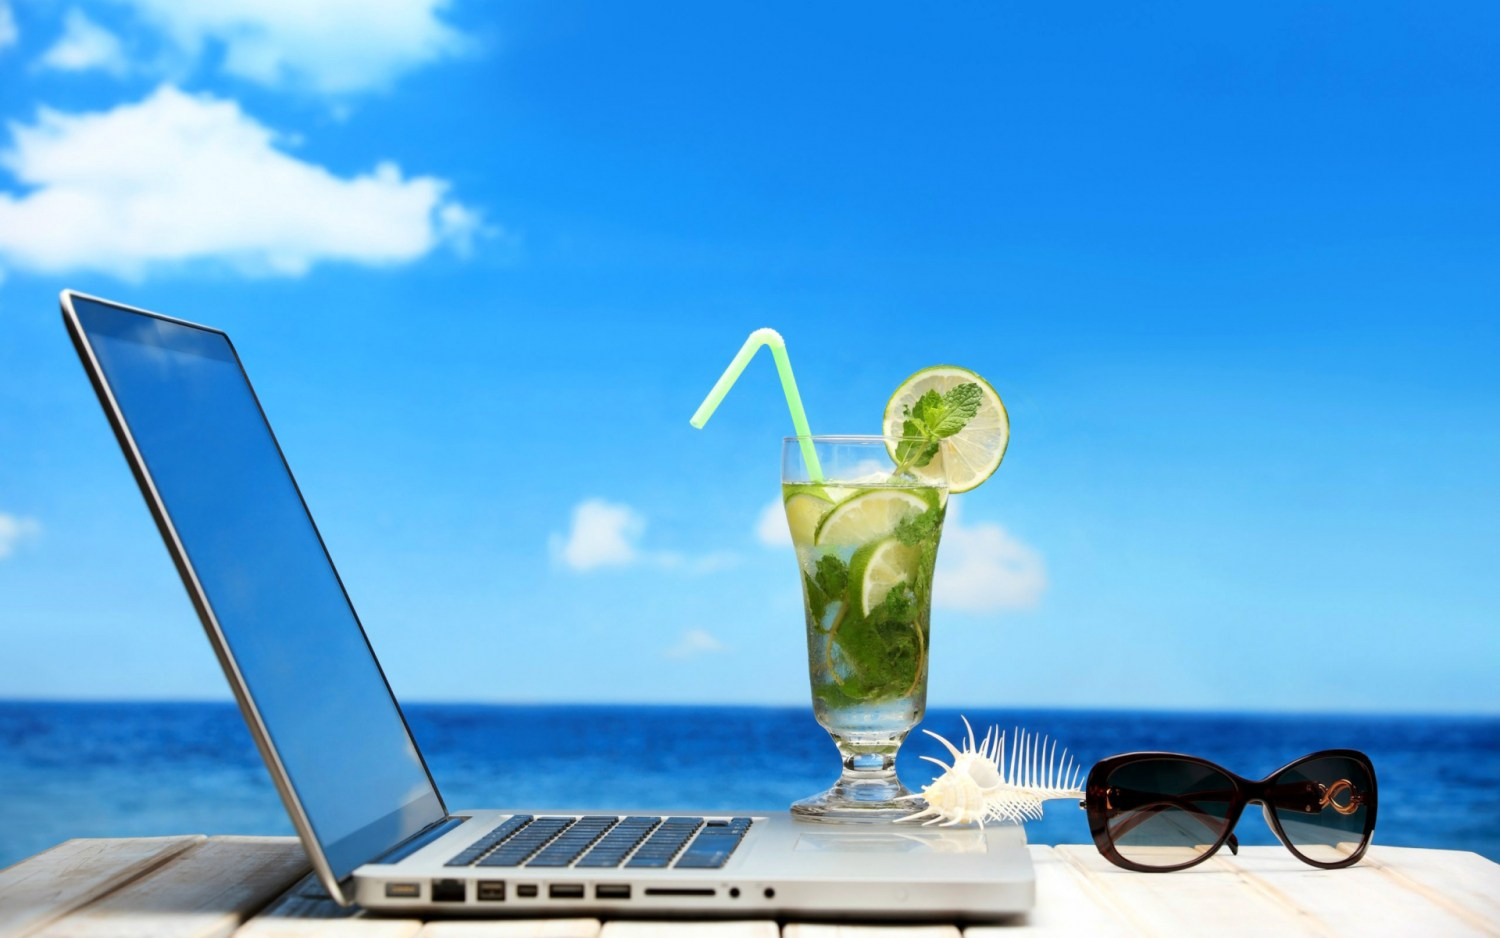 table with laptop, drink, and sunglasses with ocean and blue sky in background